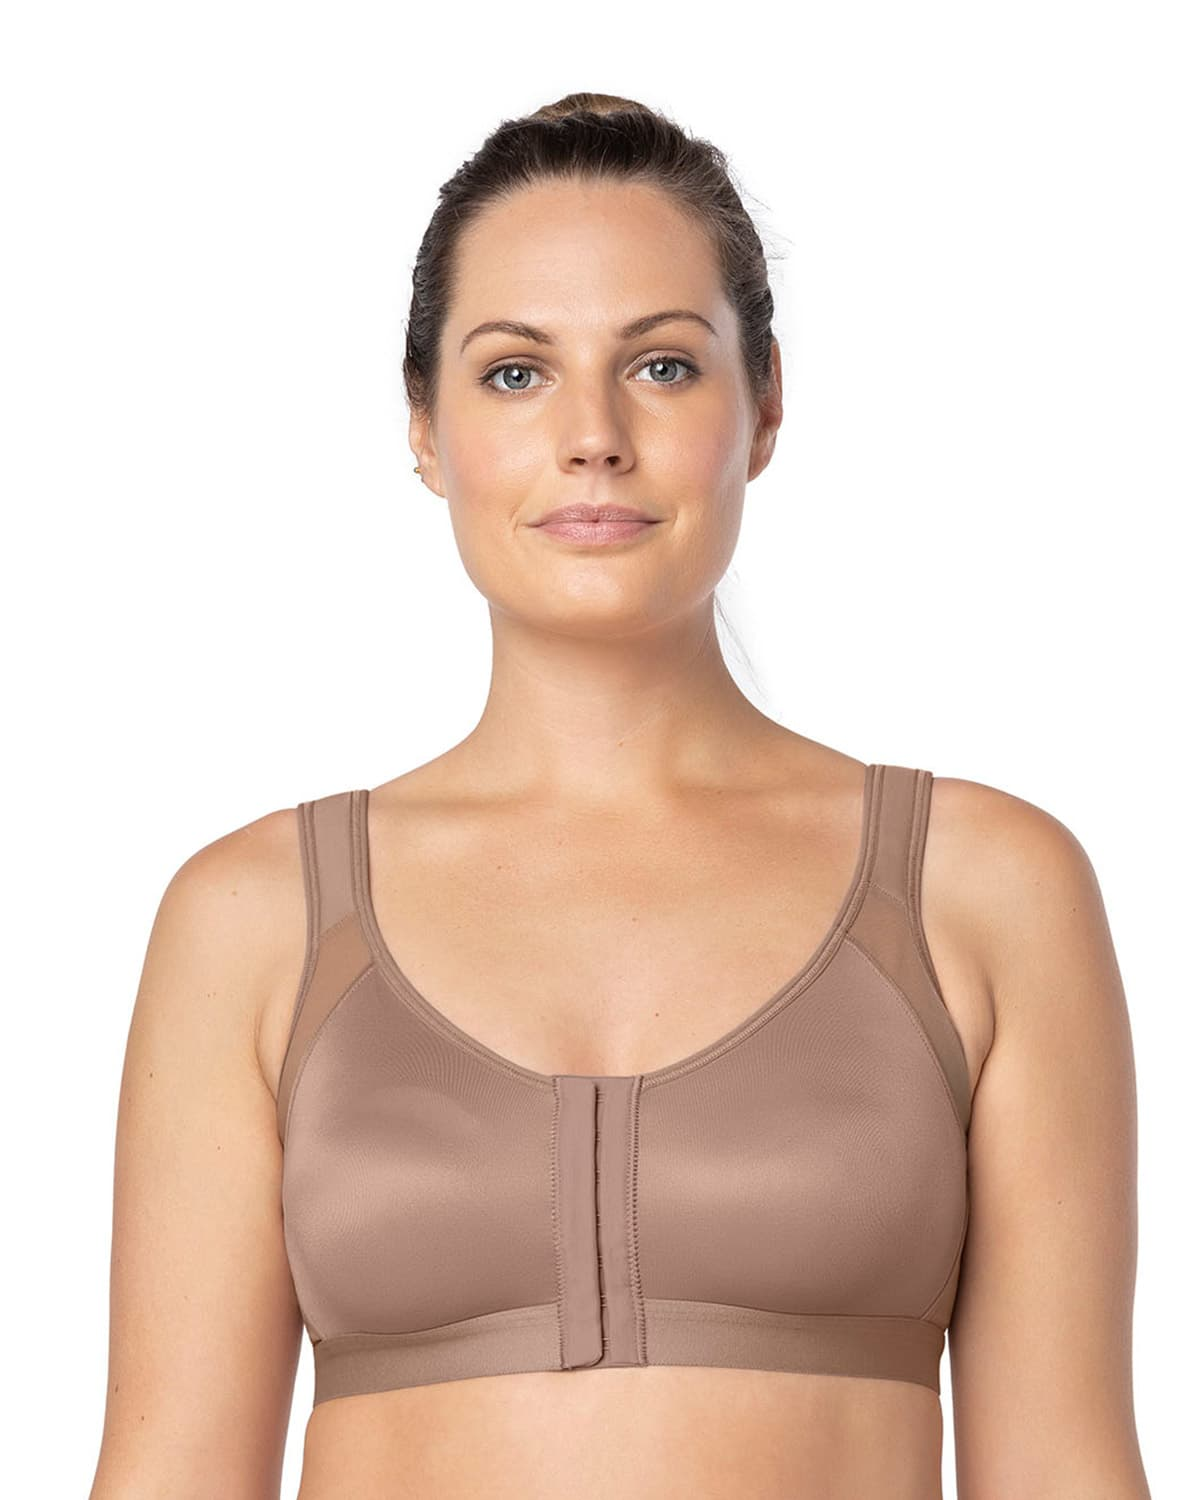 223e56a6a9b Back Support Posture Corrector Wireless Bra with Adjustable Front Closure